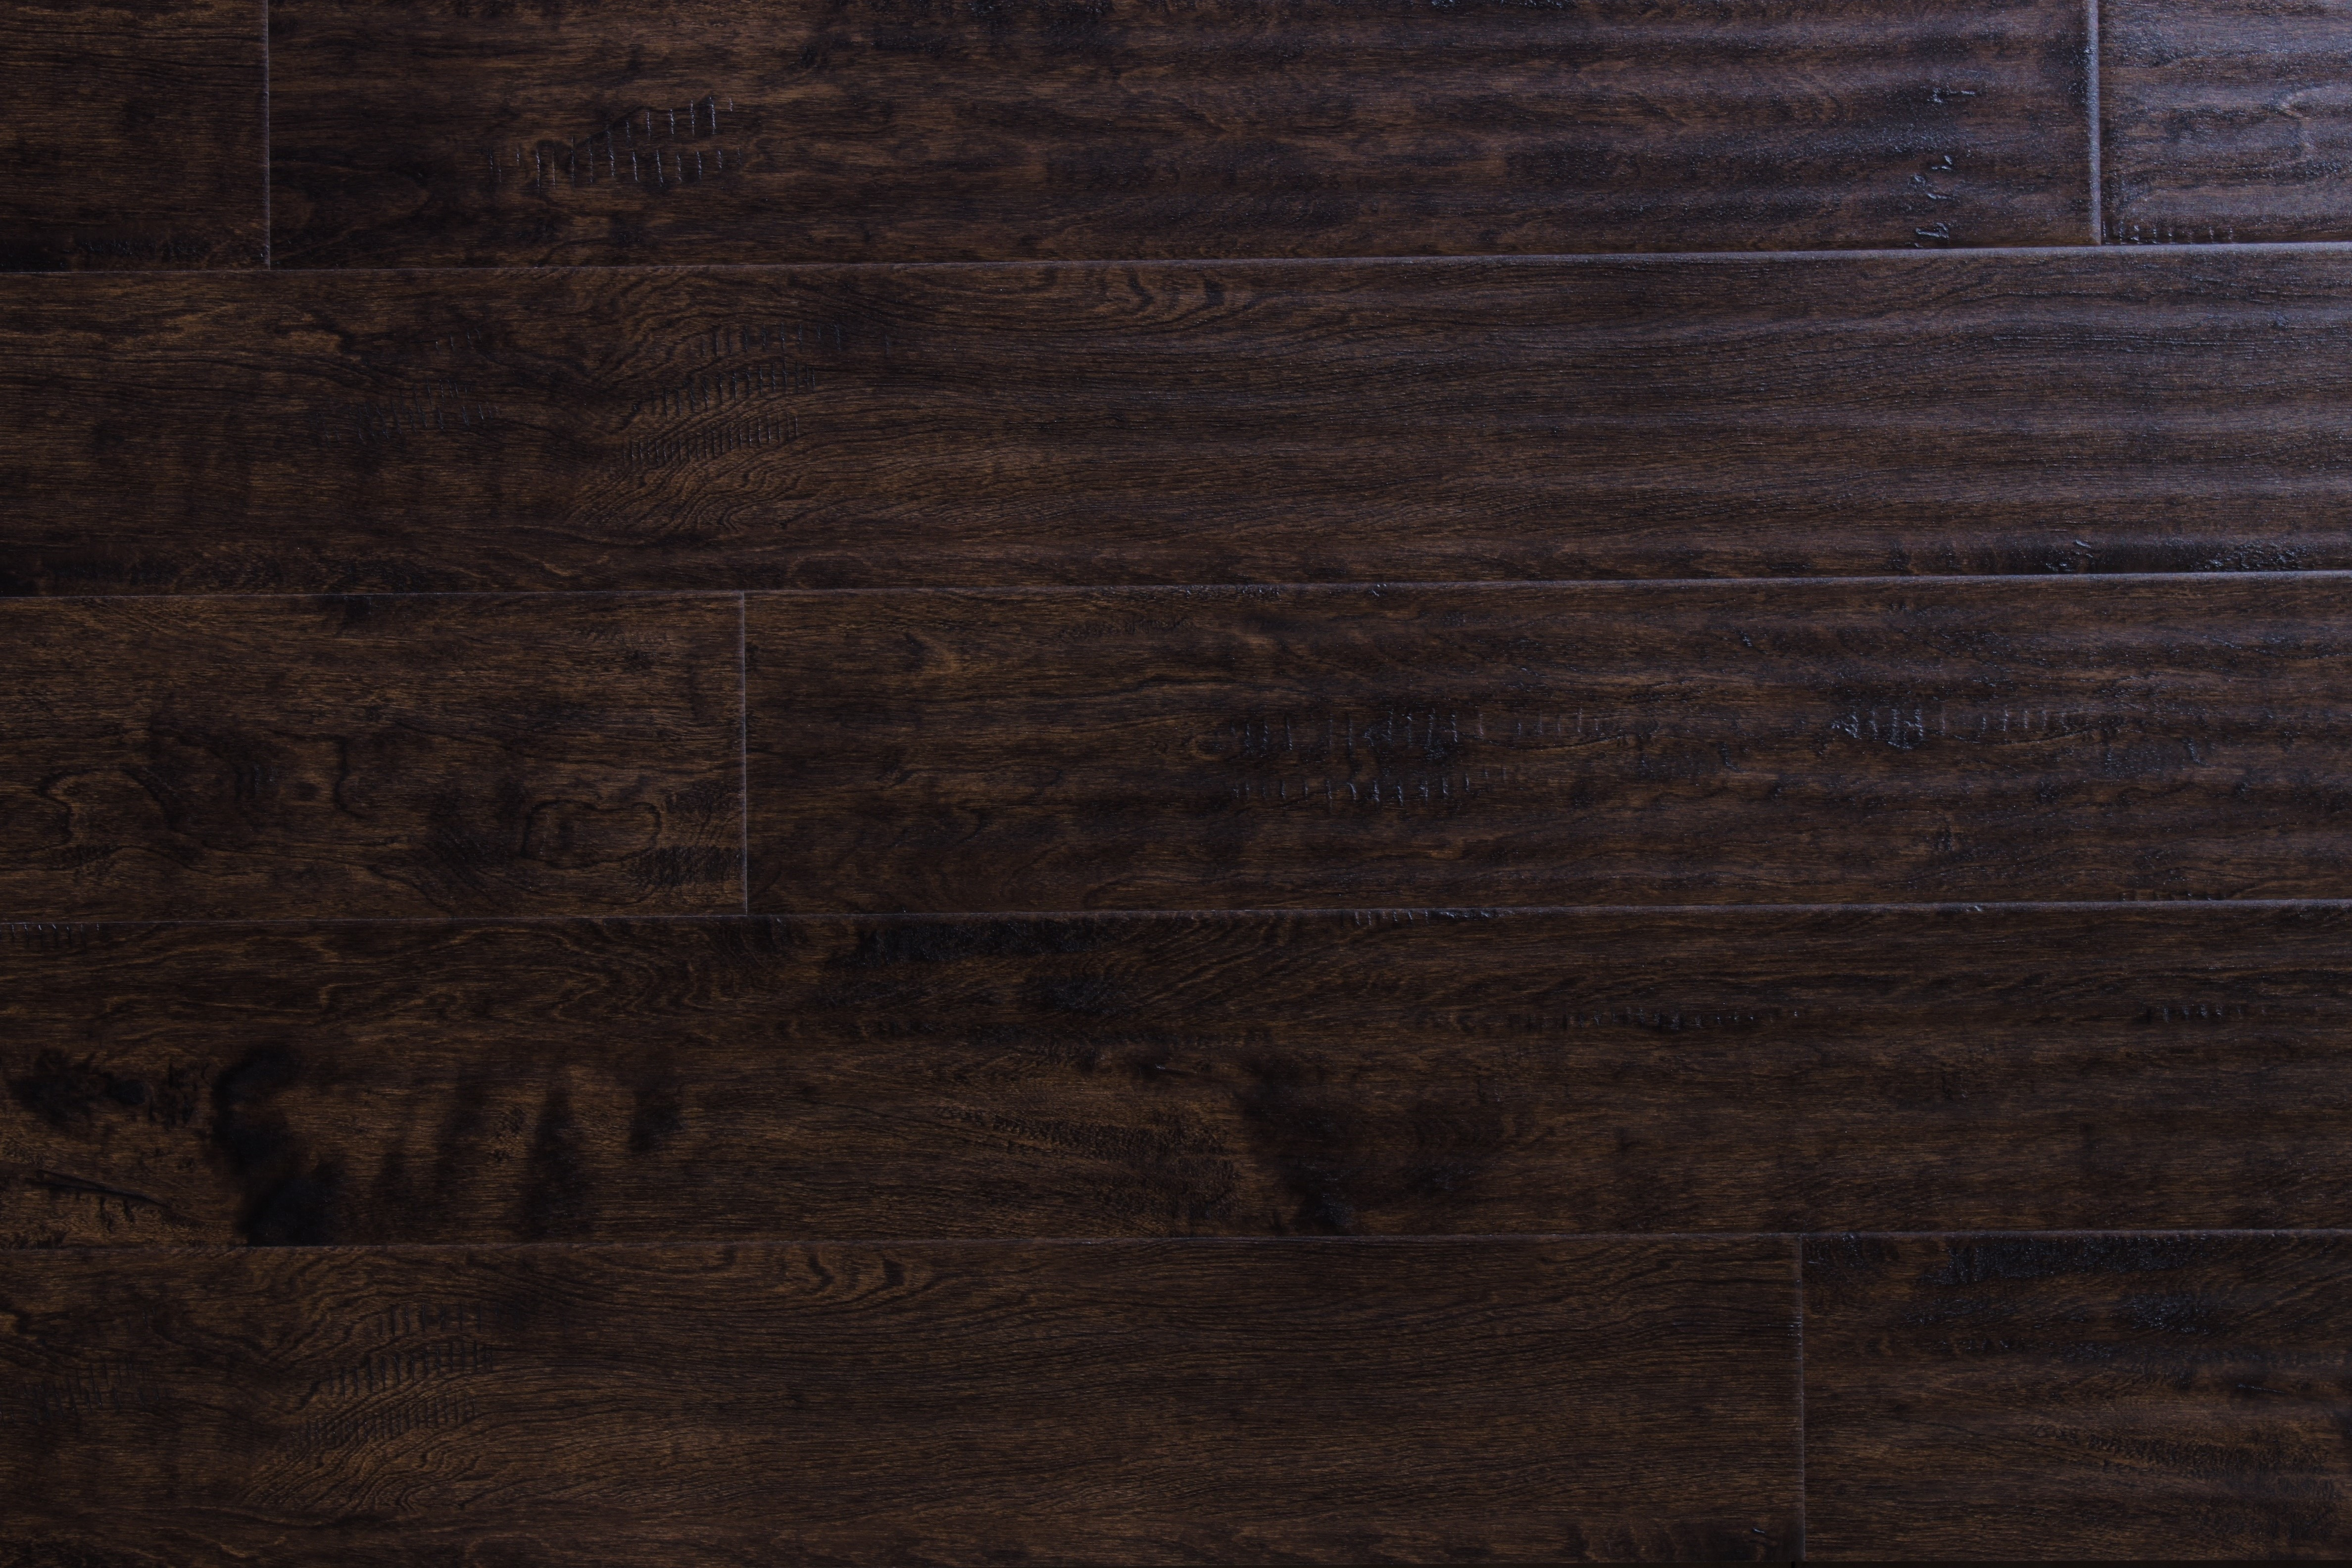 hickory hardwood flooring in kitchen of wood flooring free samples available at builddirecta within tailor multi gb 5874277bb8d3c